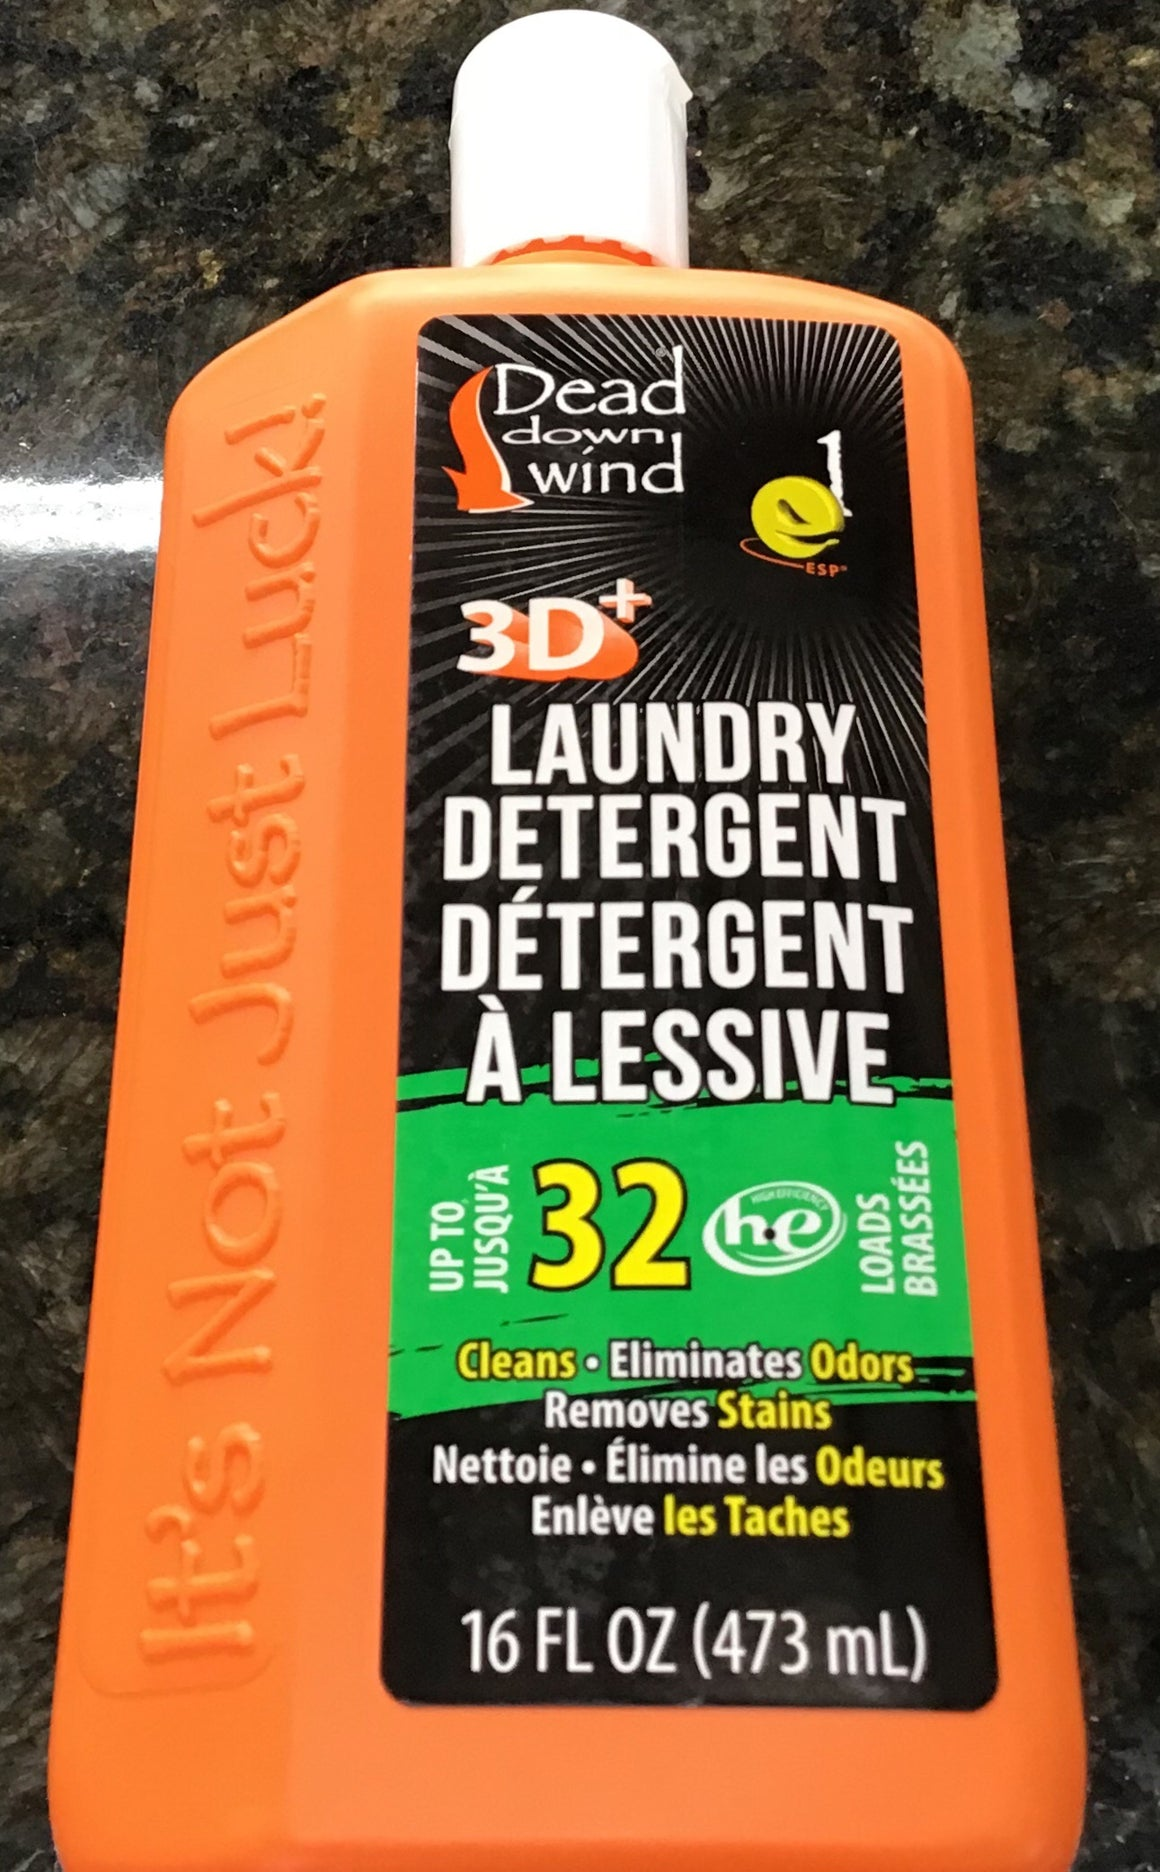 Dead Down Wind 3D+ Laundry Detergent - 16 FL OZ